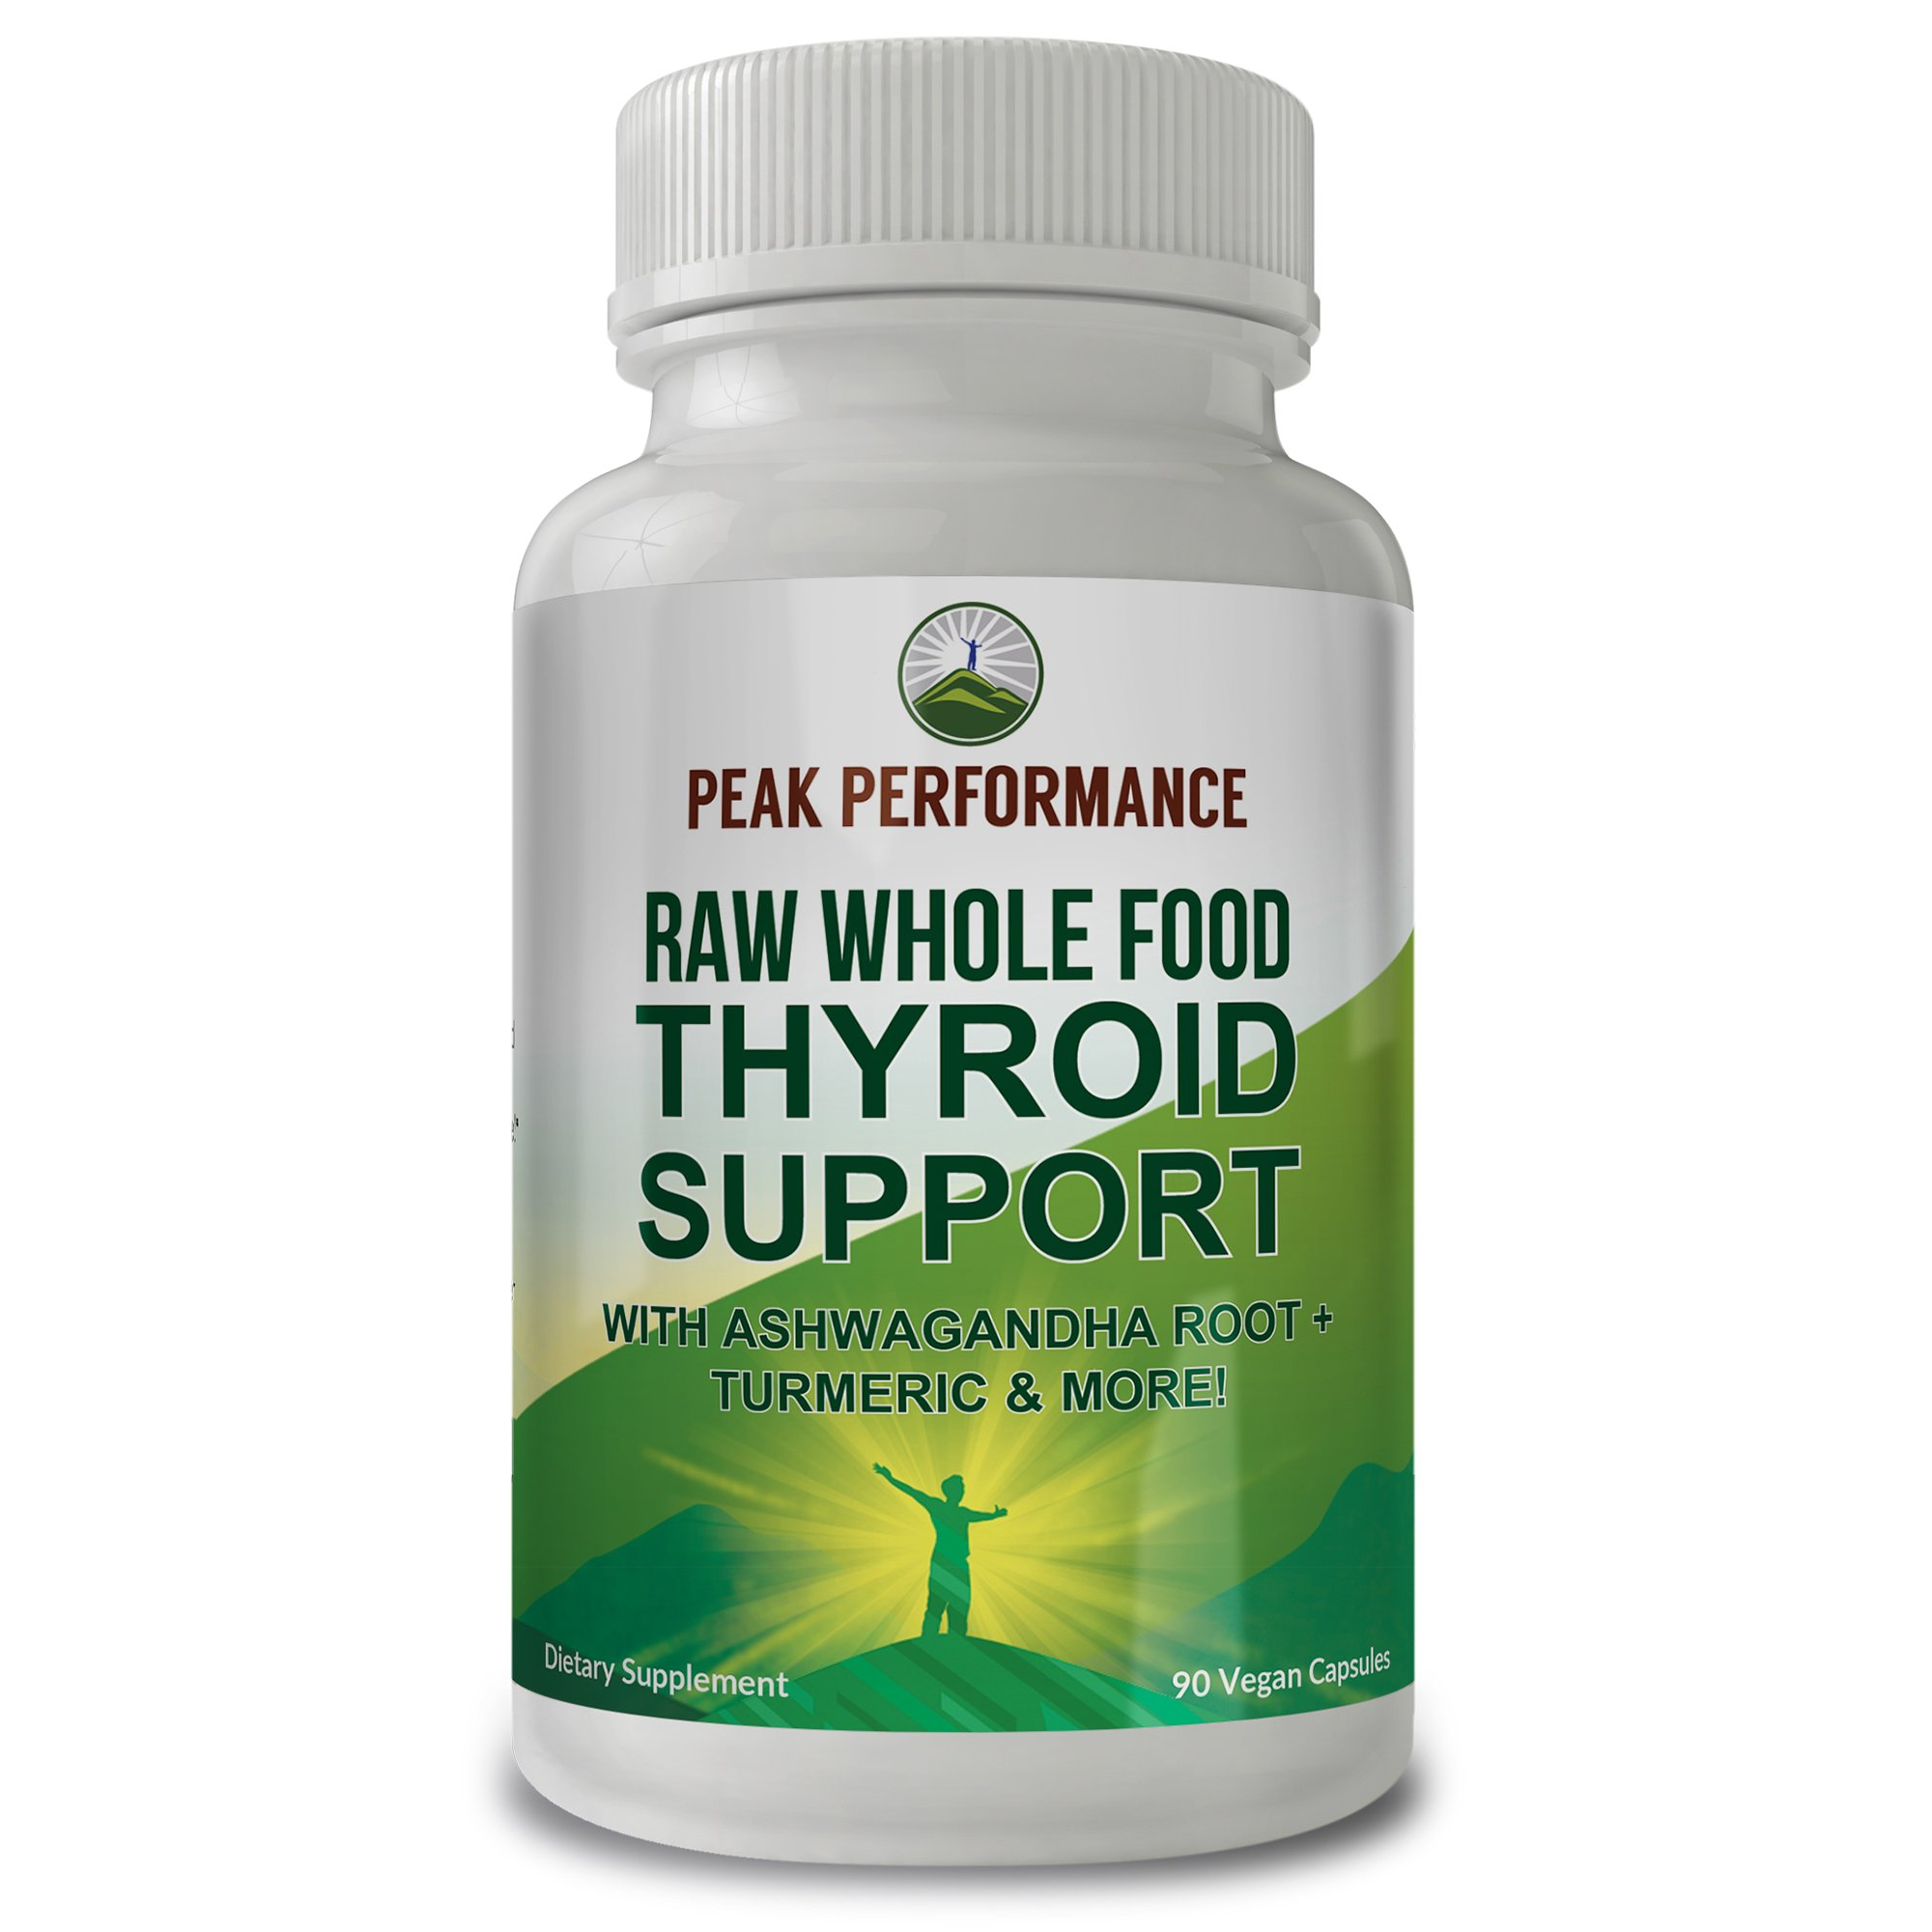 Raw Whole Food Thyroid Support Supplement by Peak Performance. 90 Vegan Capsules with Organic Kelp, Ashwagandha Root, Turmeric, Iodine. for Healthy Thyroid Hormone (1 Pack)